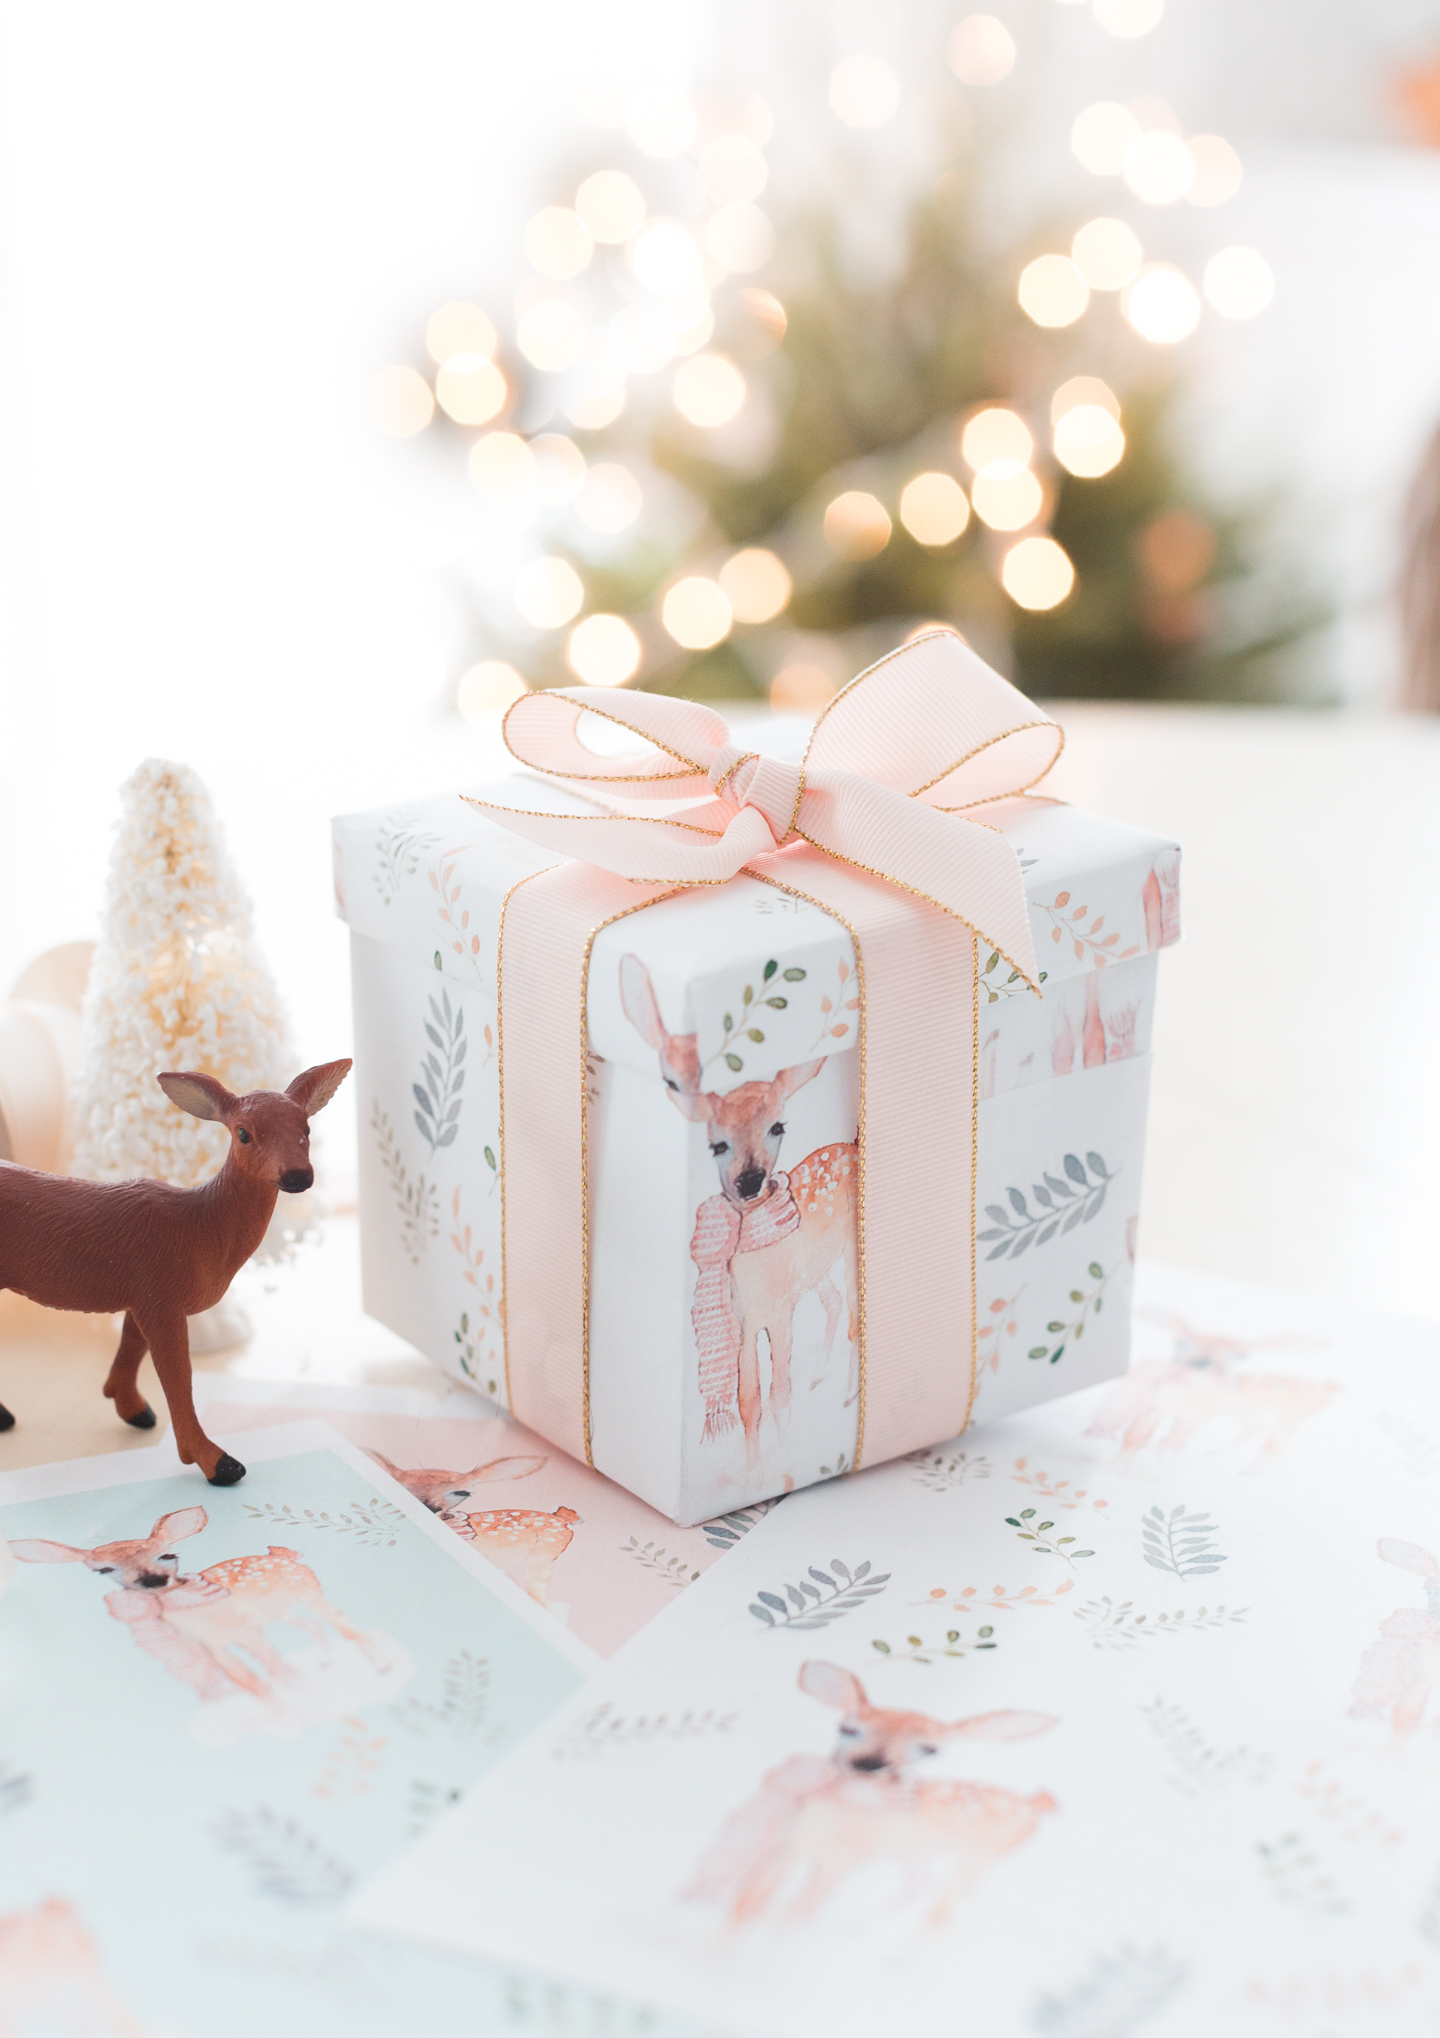 There's no need for gift tags with Personalized Gift Wrap from gresincomri.ga Customize your wrapping paper to display classic holiday greetings or a loved one's name. Customize your wrapping paper to display classic holiday greetings or a loved one's name.